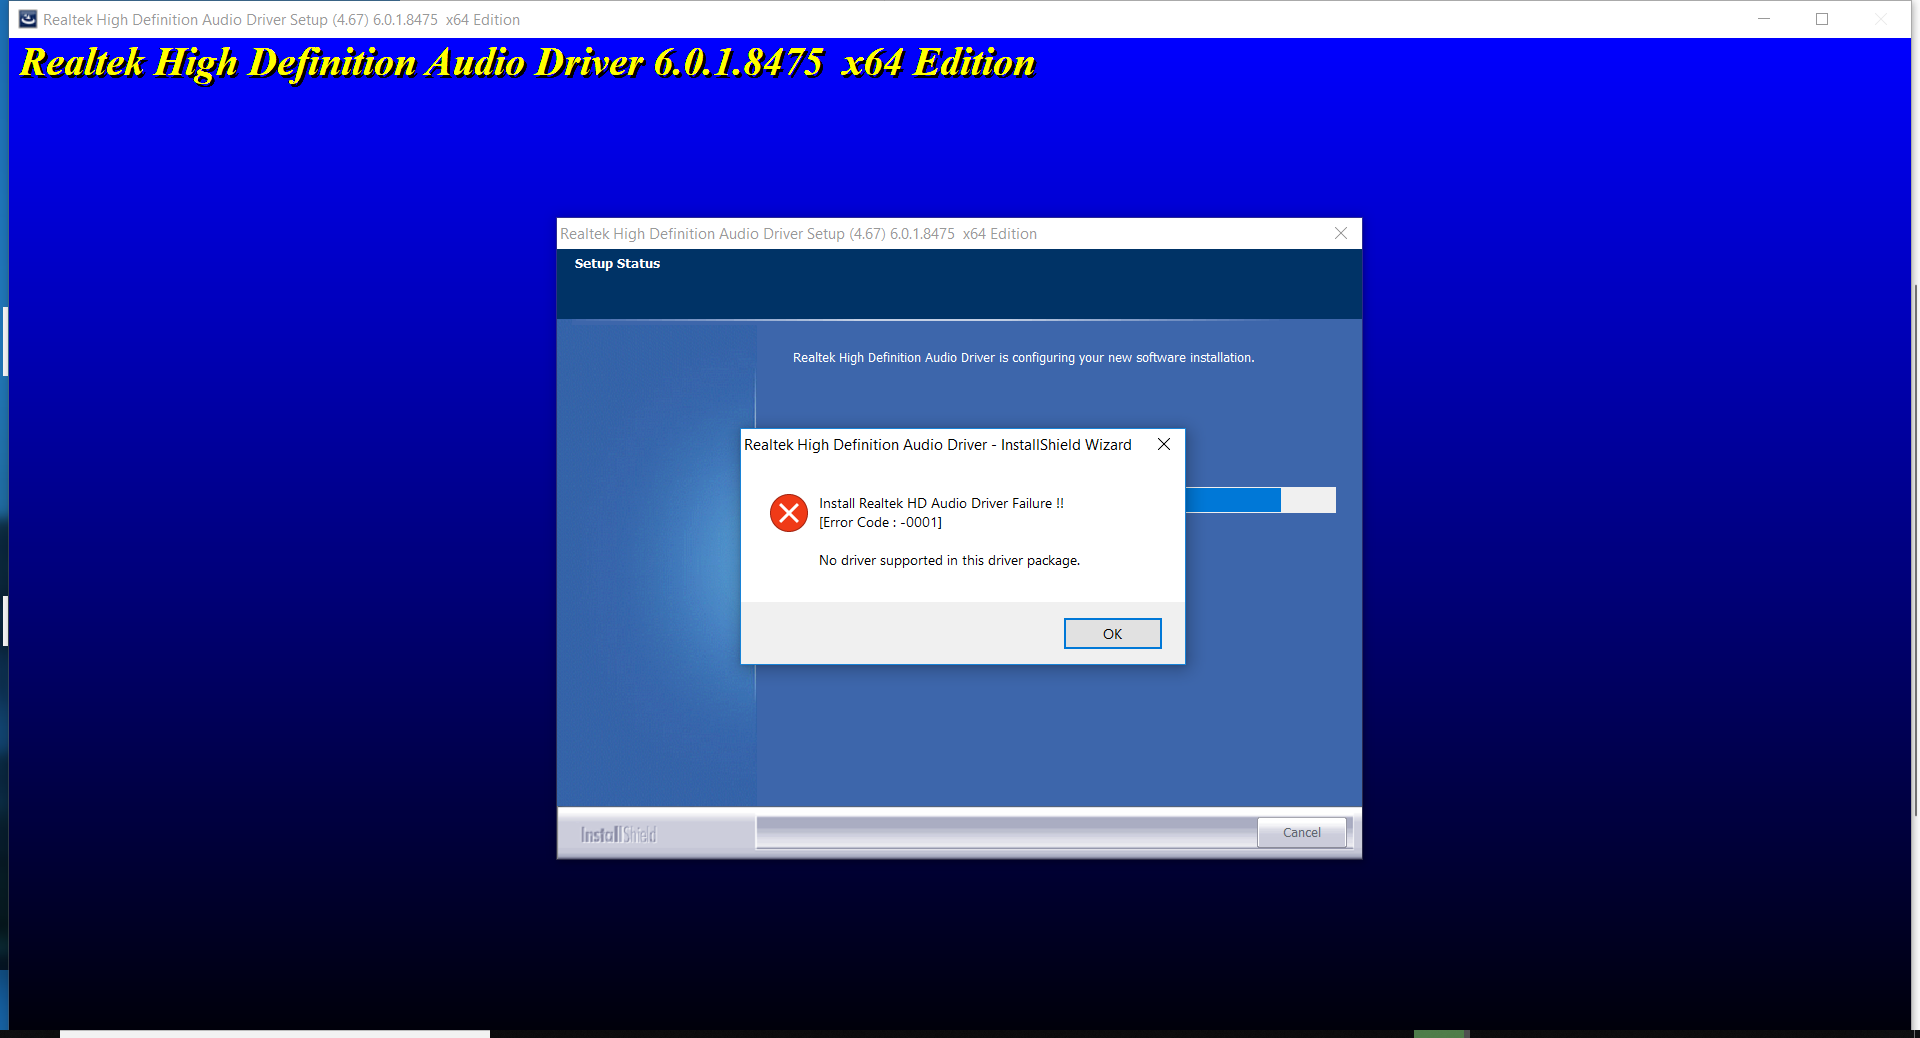 realtek high definition audio software windows 10 64 bit